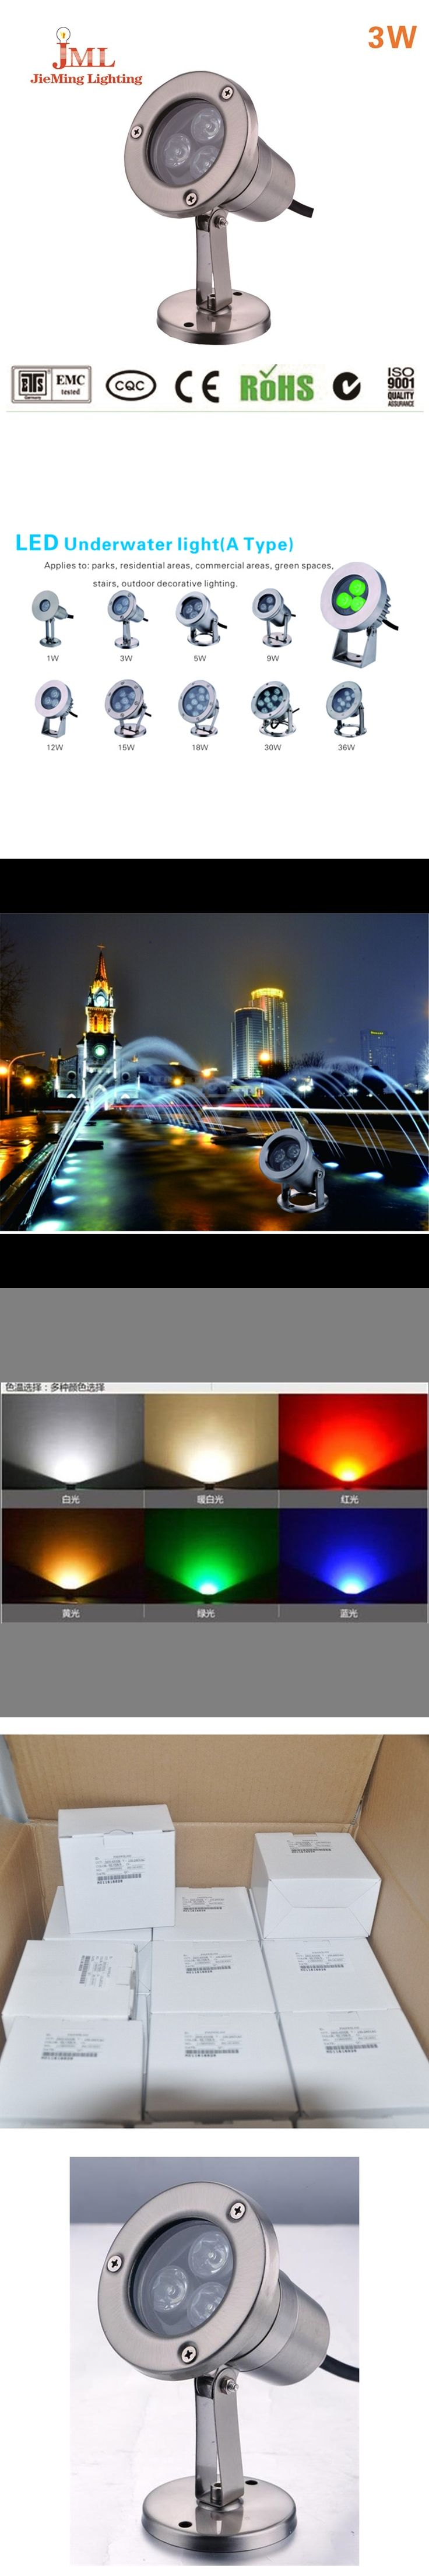 3x1w 12v Resistant Red LED Underwater Light for Landscape Fountain Pond Lighting IP68 Landscape water fountains led water